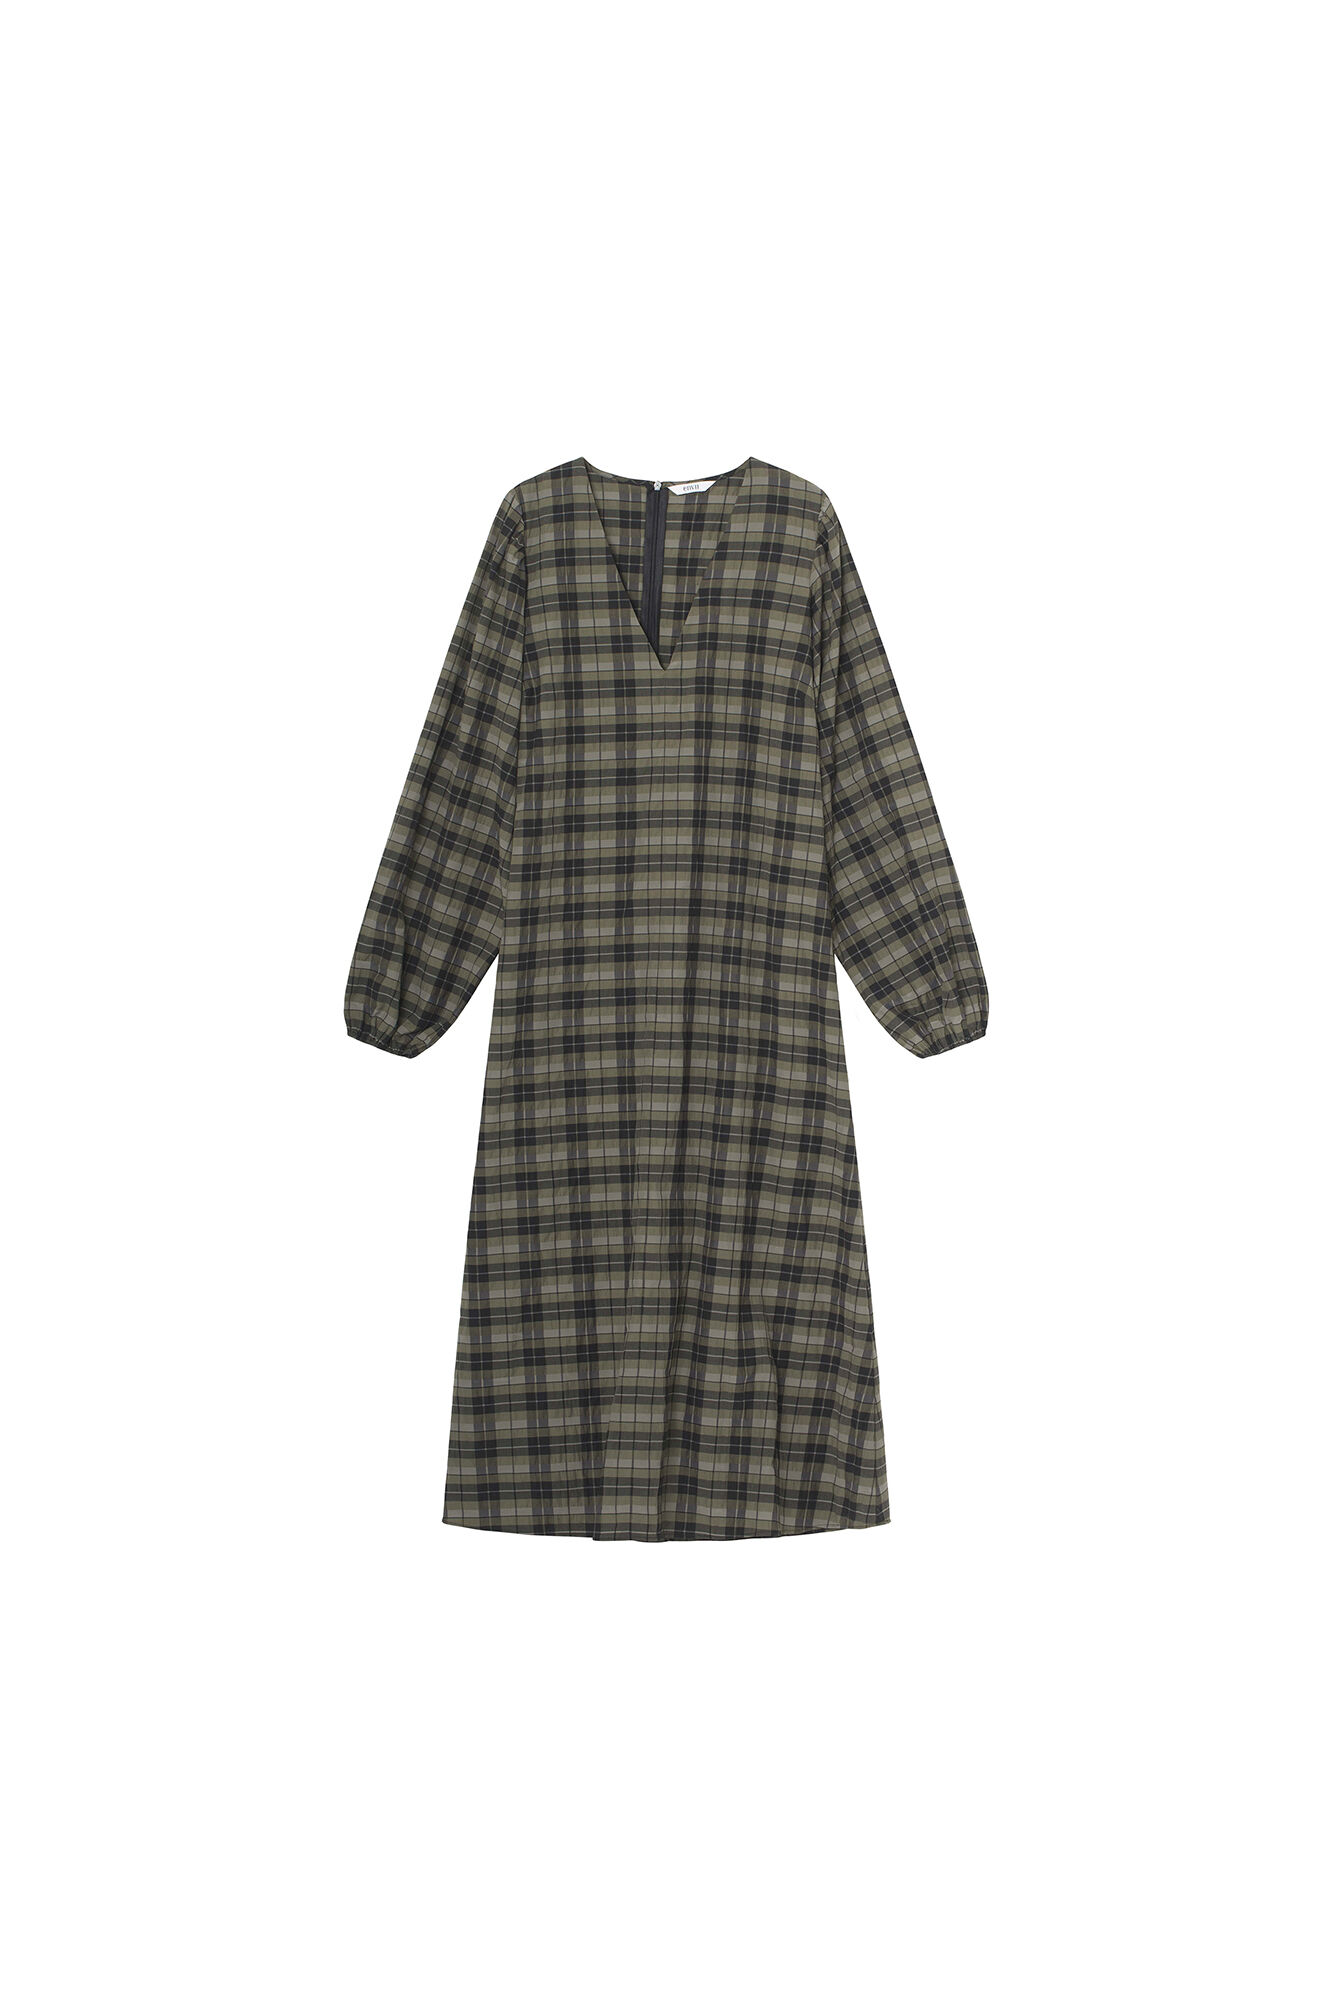 ENJADE DRESS 6800, OLIVE CHECK